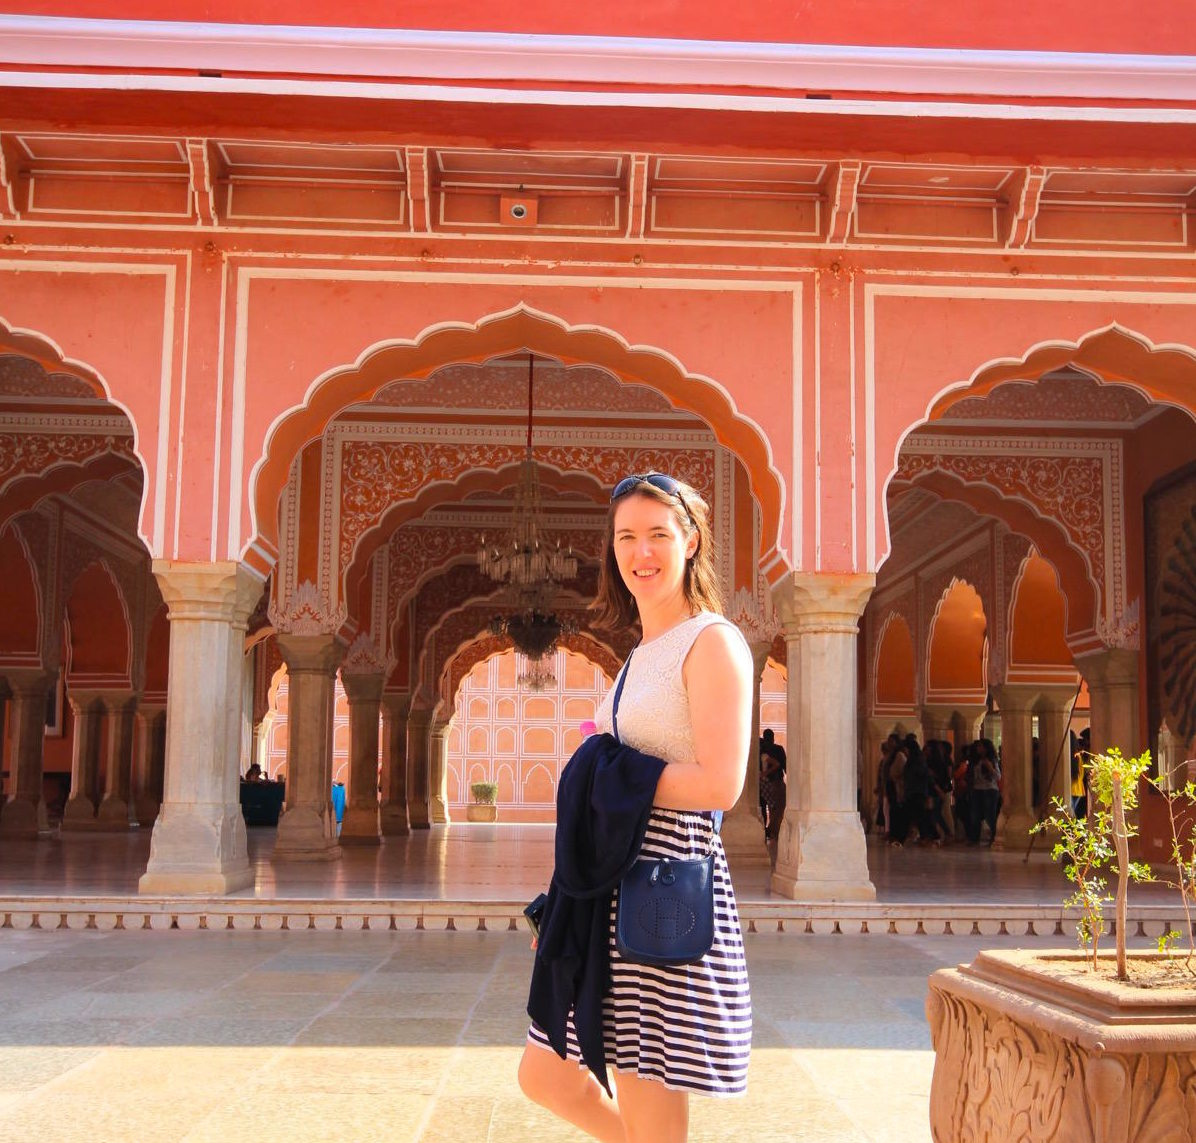 Two days in Jaipur - Travel with Penelope and Parker